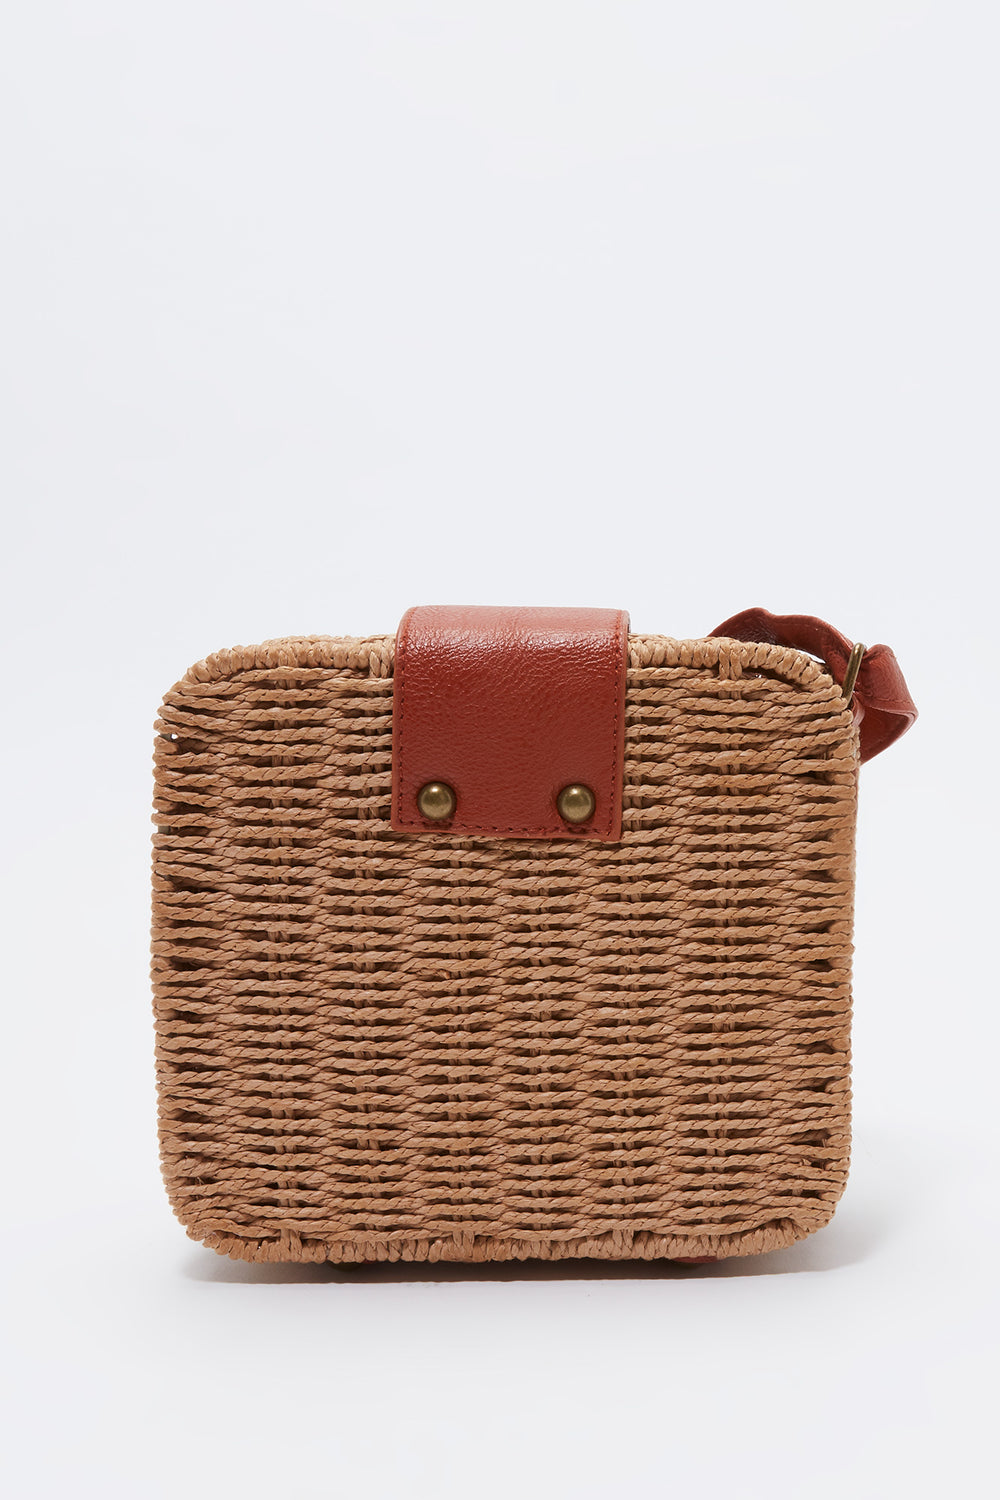 Box Wicker Bag Natural